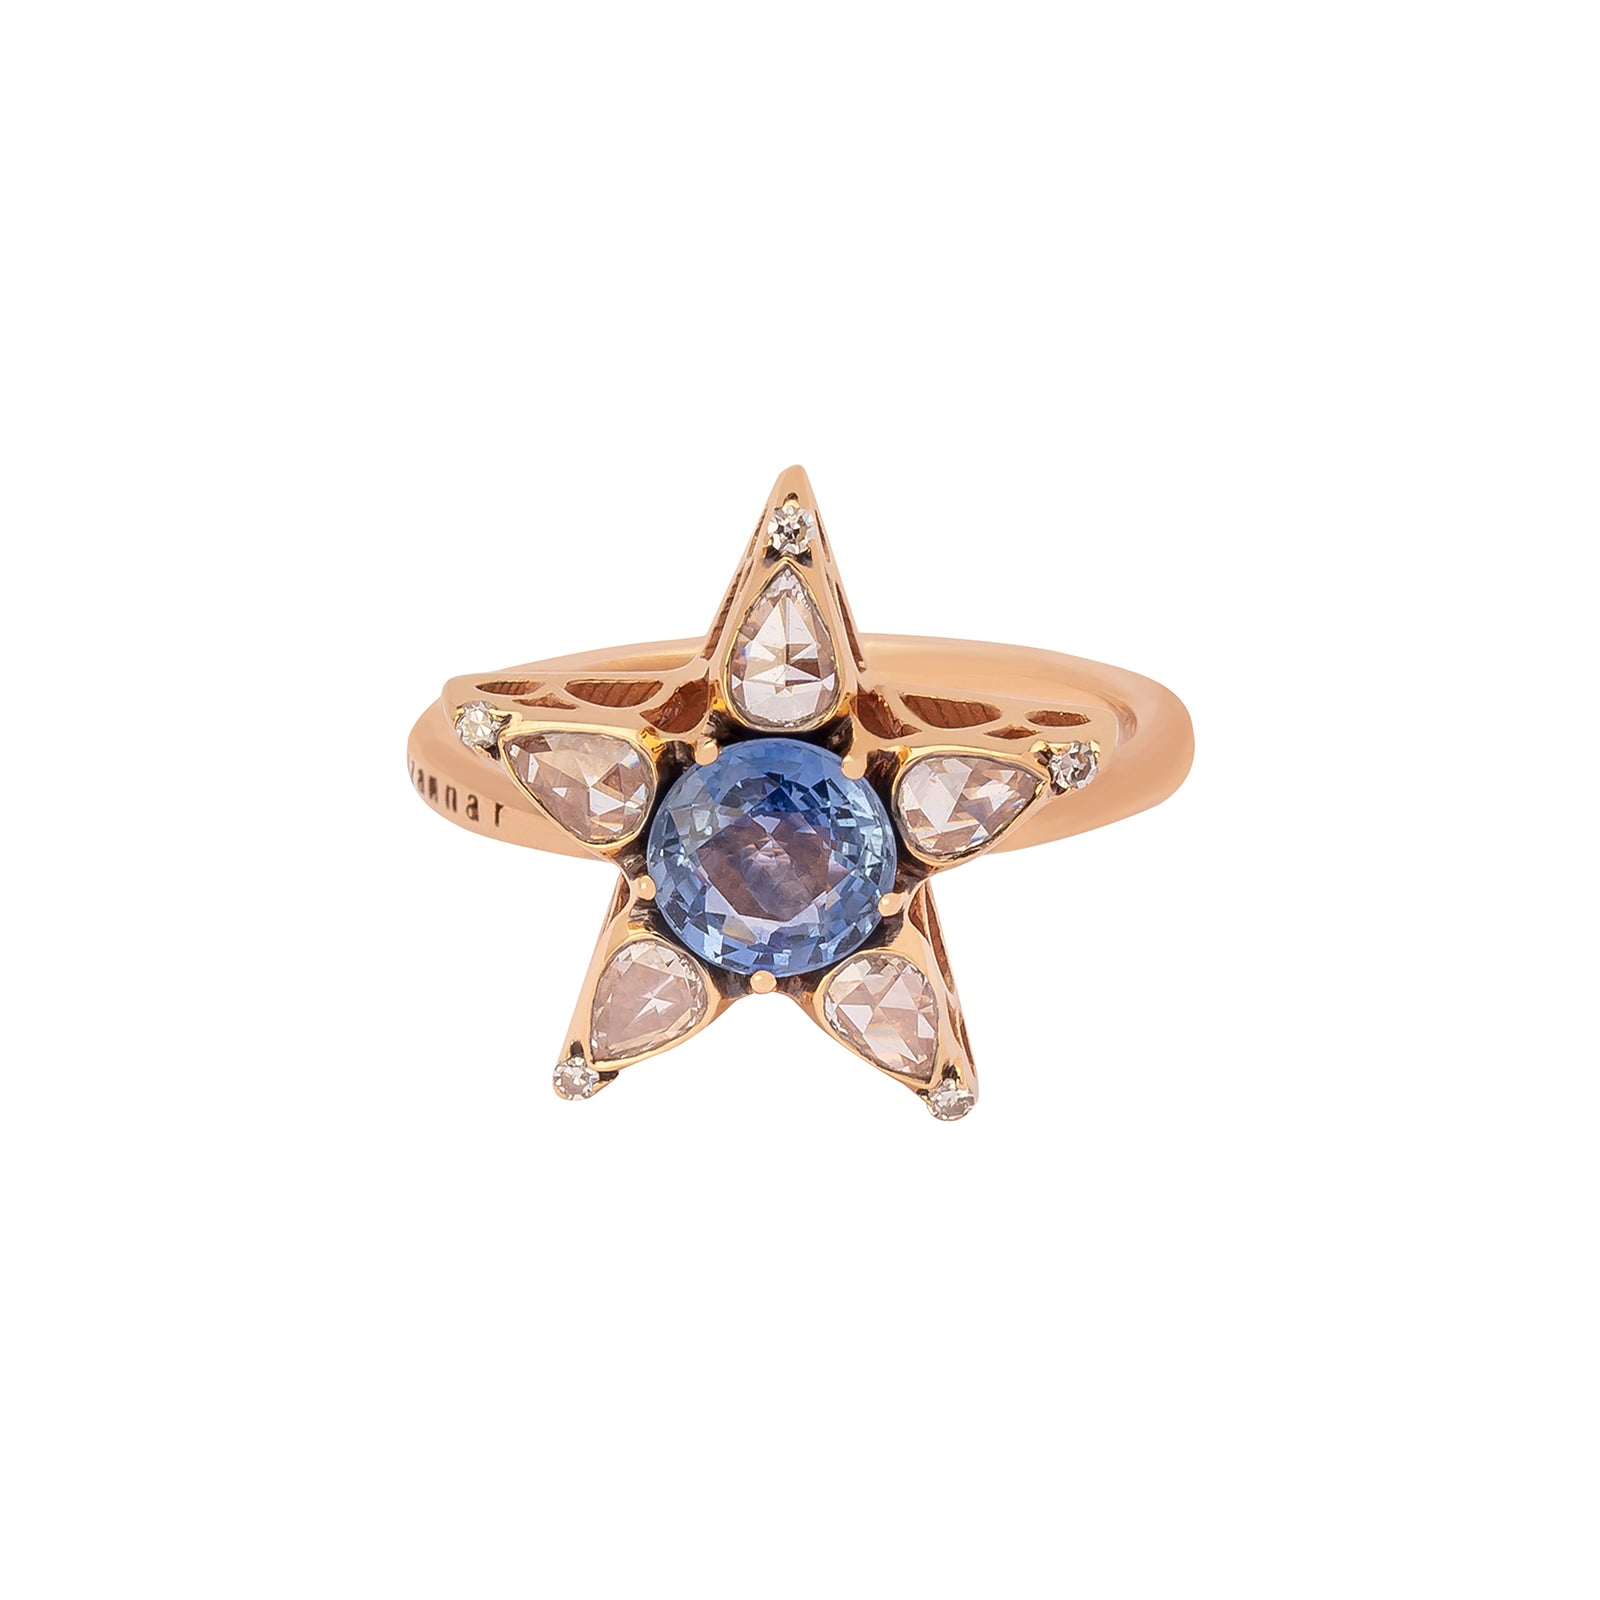 Selim Mouzannar Istanbul Ring - Sapphire - Rings - Broken English Jewelry